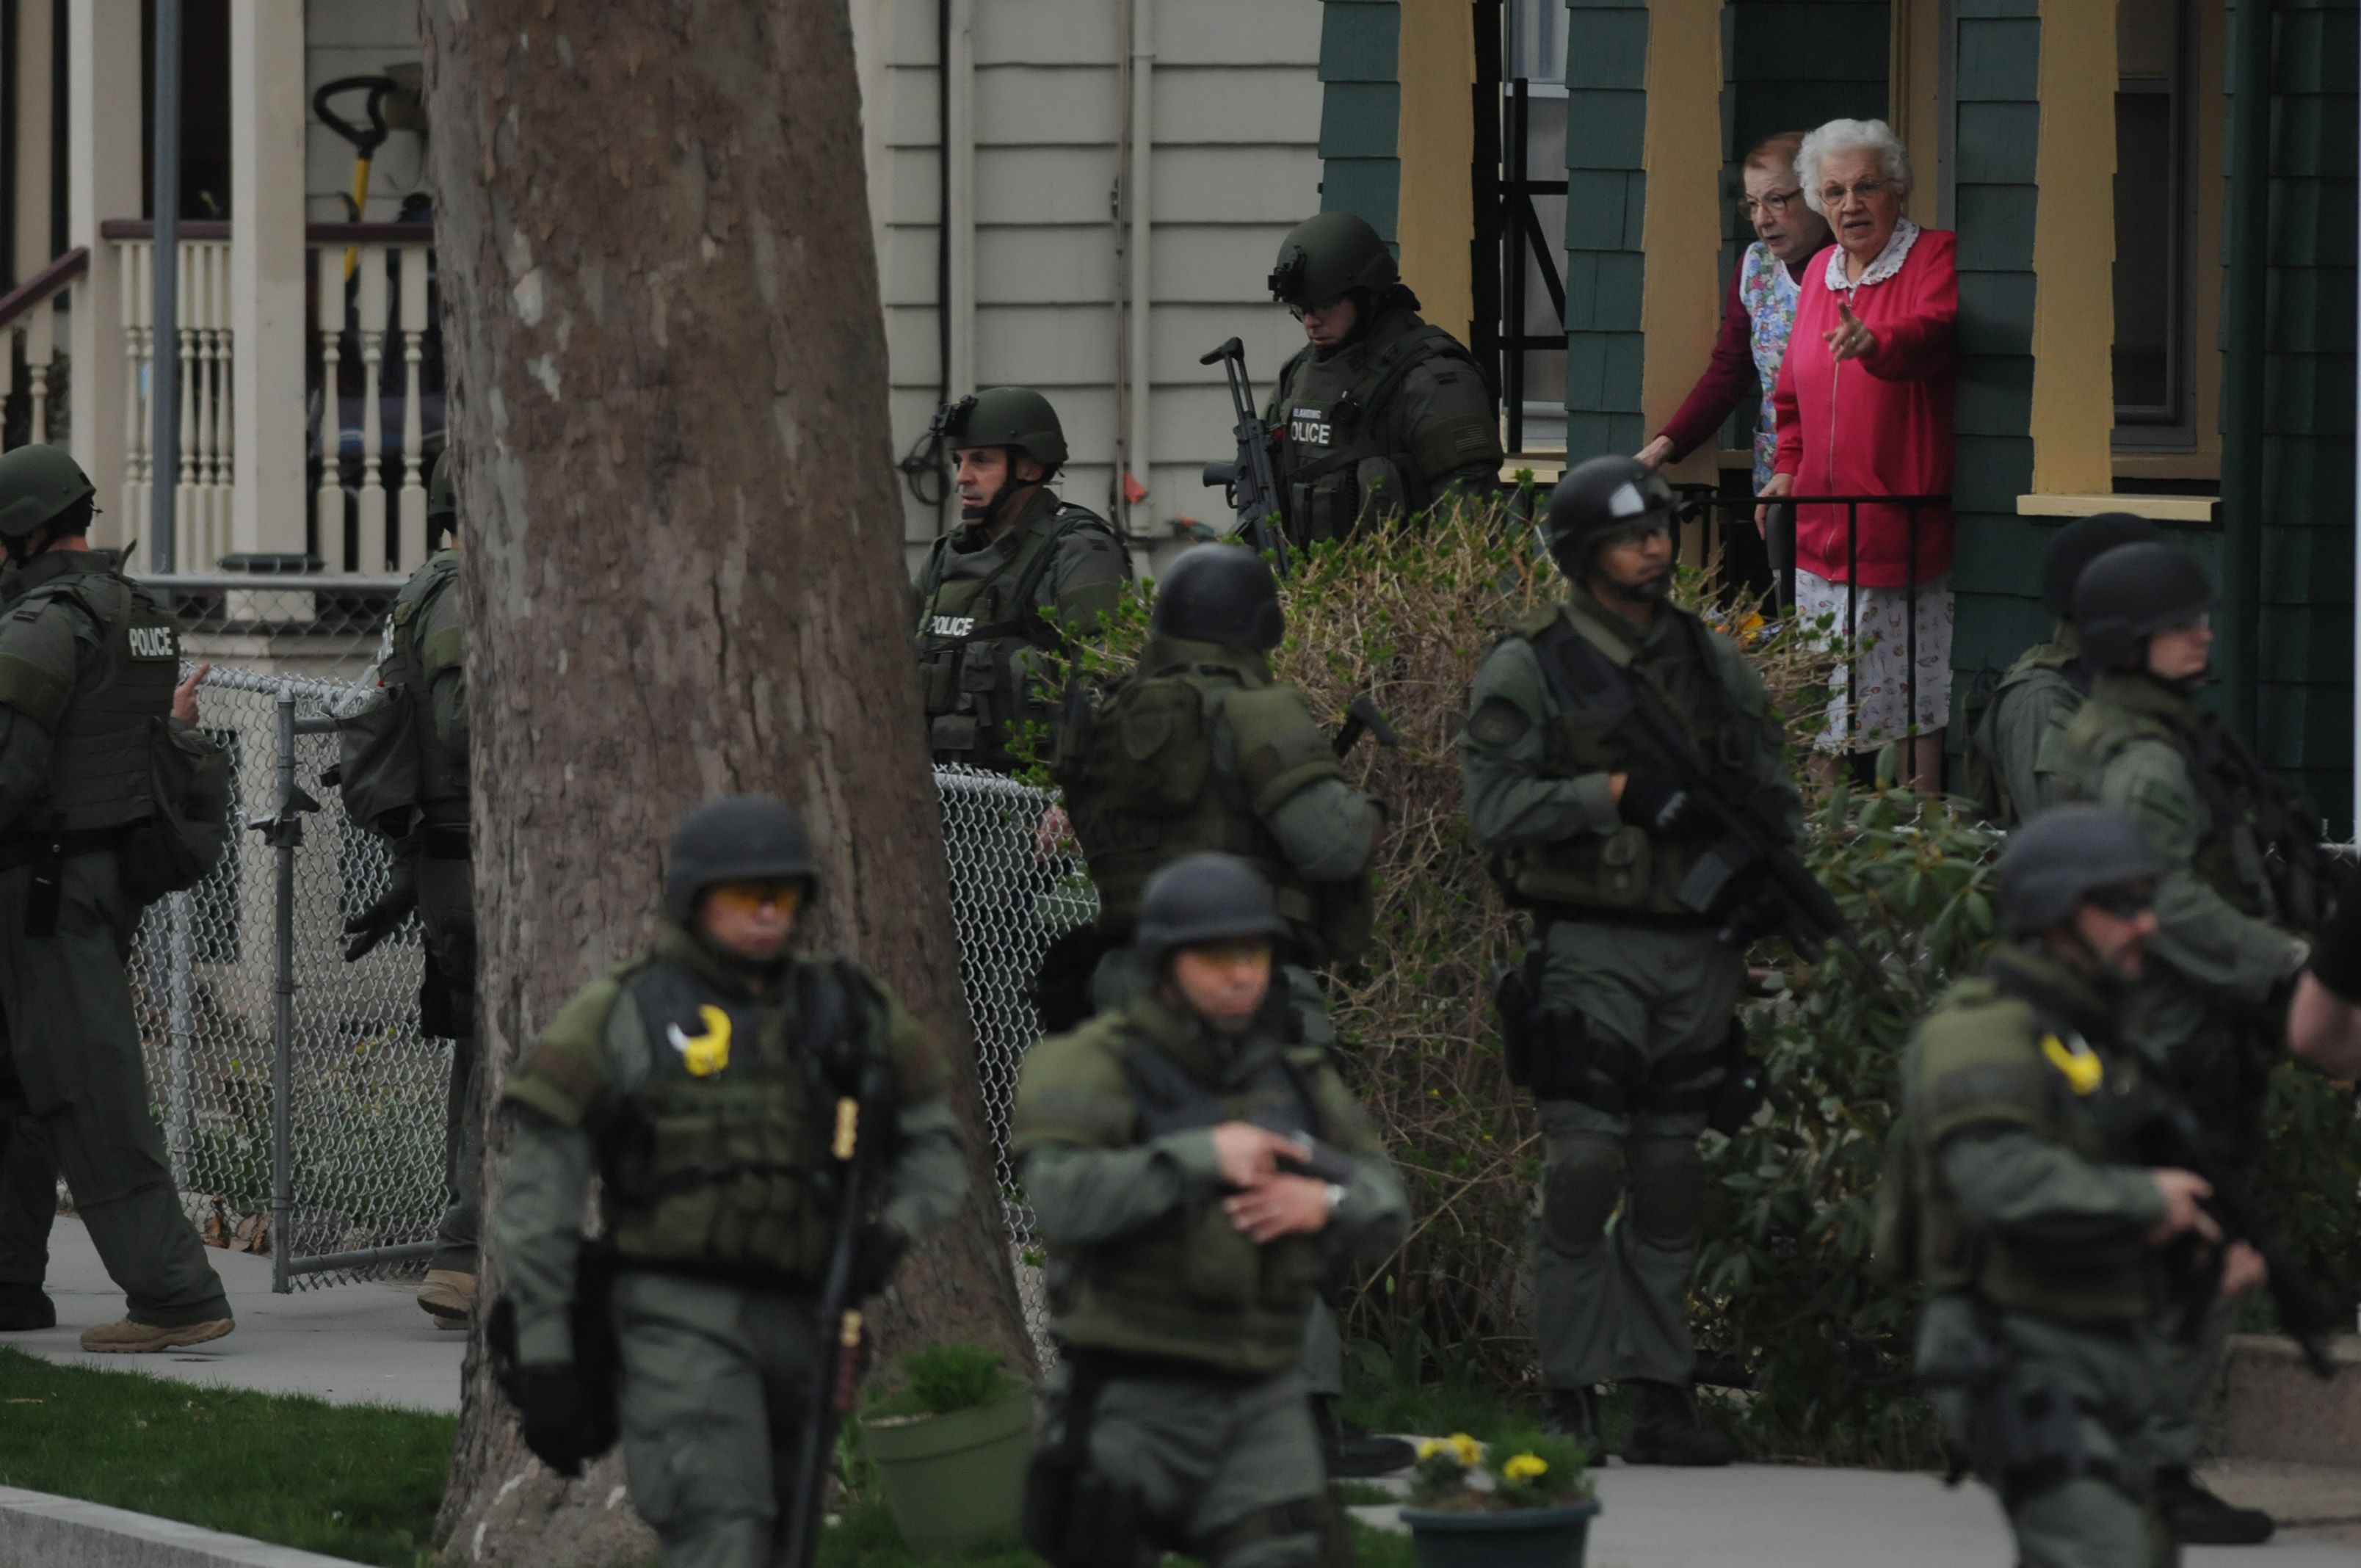 A neighborhood on Elm St. in Watertown was overrun by Police personal searching house to house for one of the brothers, Dzhokhar A. Tsarnaev, 19, suspected to be the Boston Marathon bomber, who was still on the loose.  Shots appeared to be fired as the police were in the building, but the shots apparently came from the Frankiln Street area a few blocks away. His brother, Tamerlan Tsarnaev,  was killed early Friday morning in a police shoot out in Watertown, Mass.